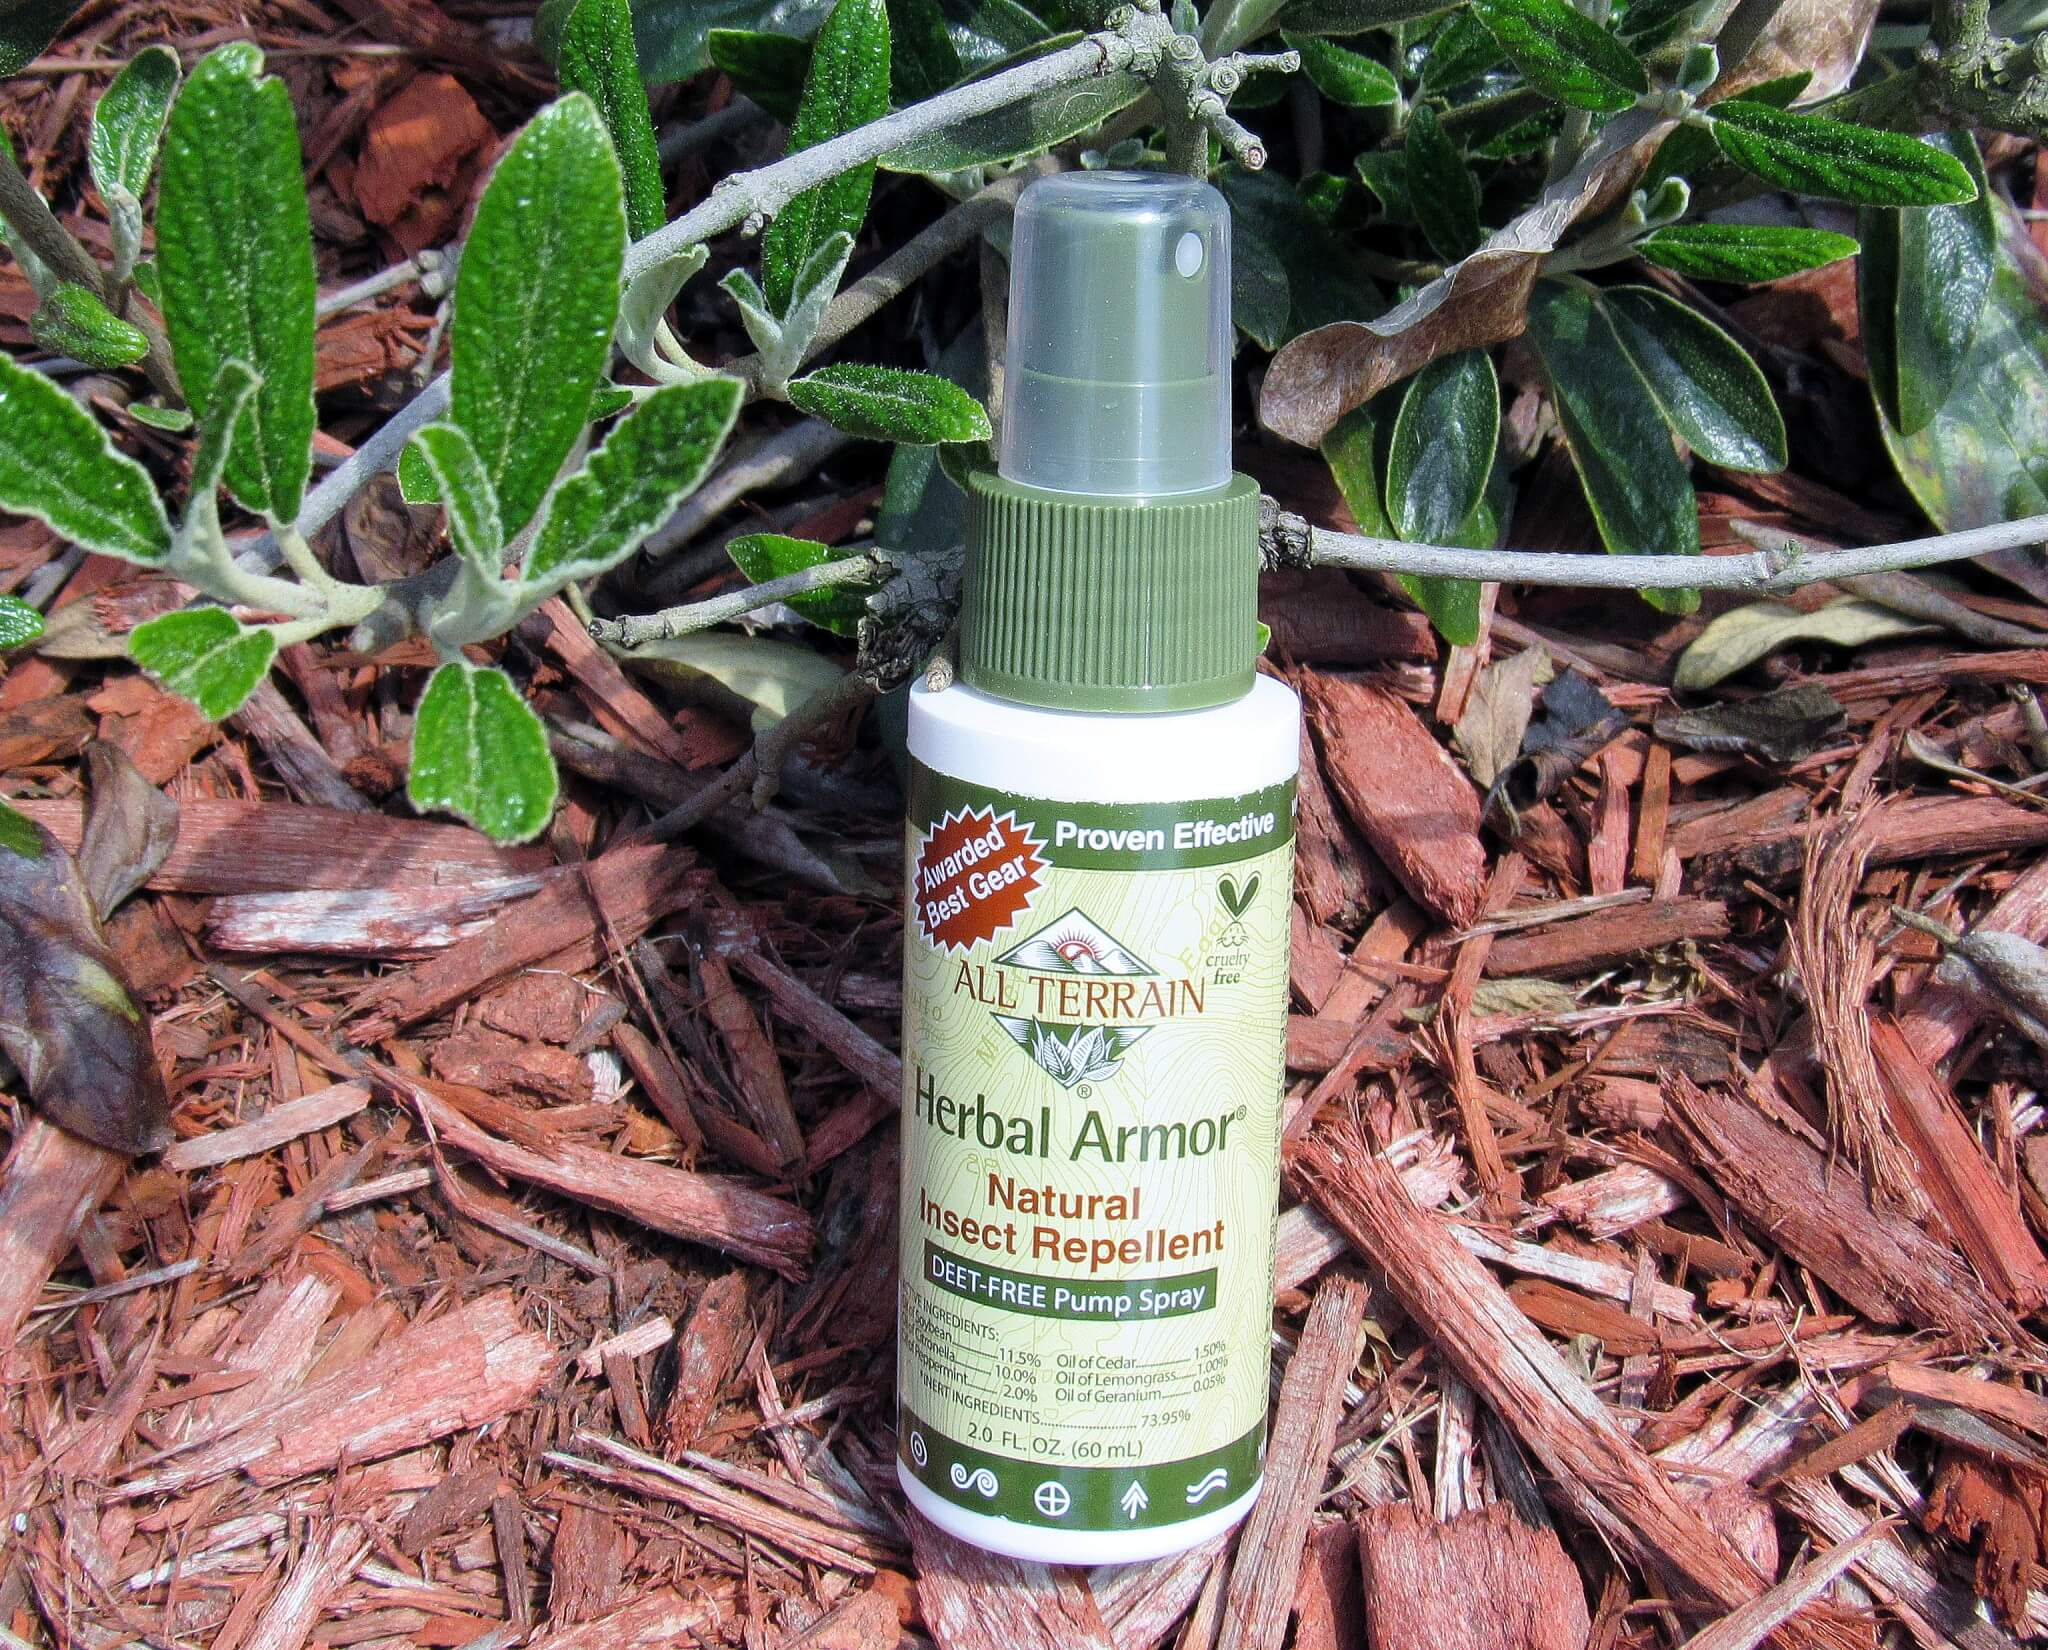 Herbal Armor Natural Insect Repellent Review